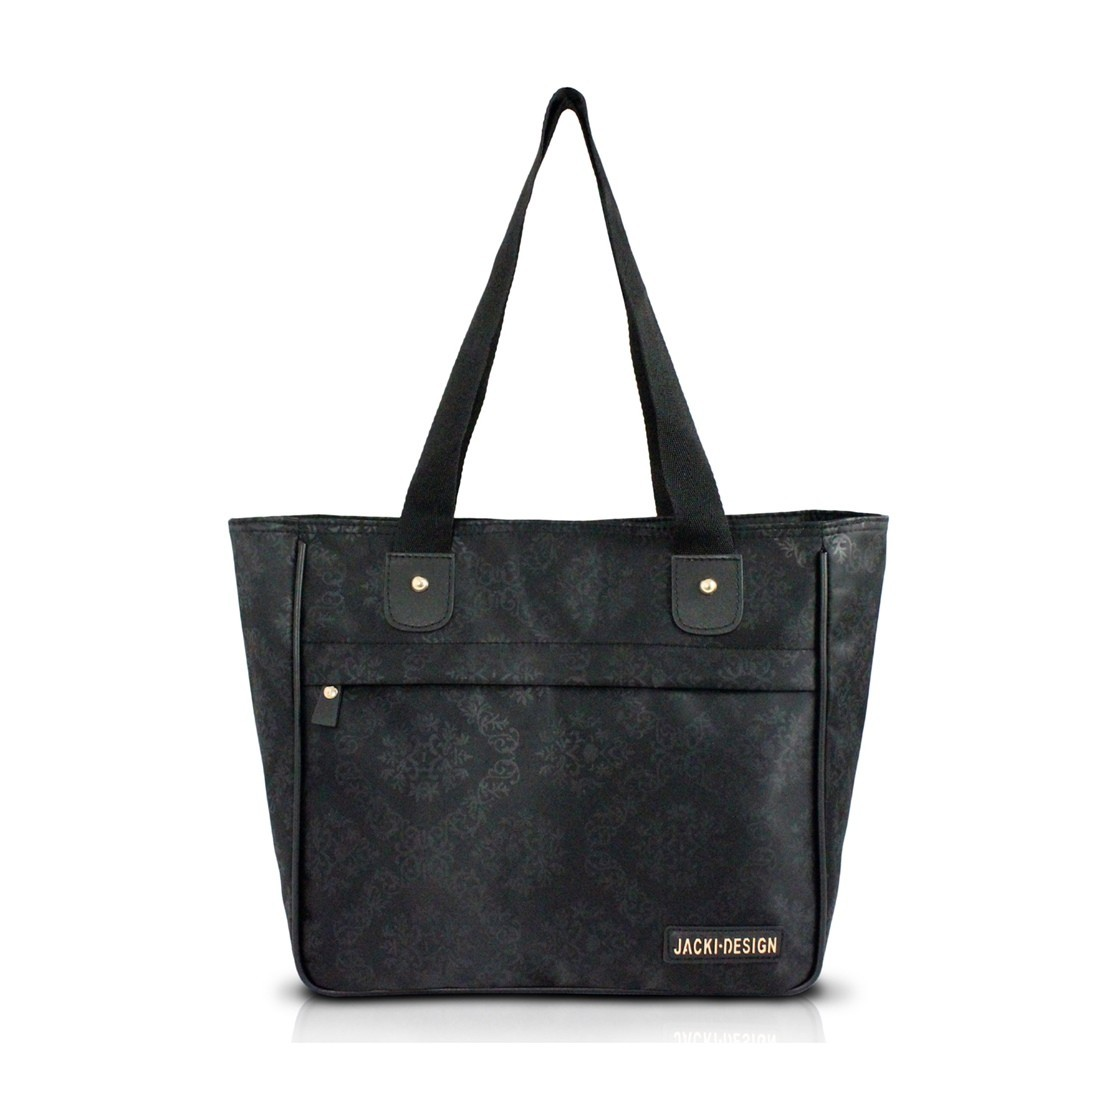 Bolsa Shopper Essencial II Jacki Design